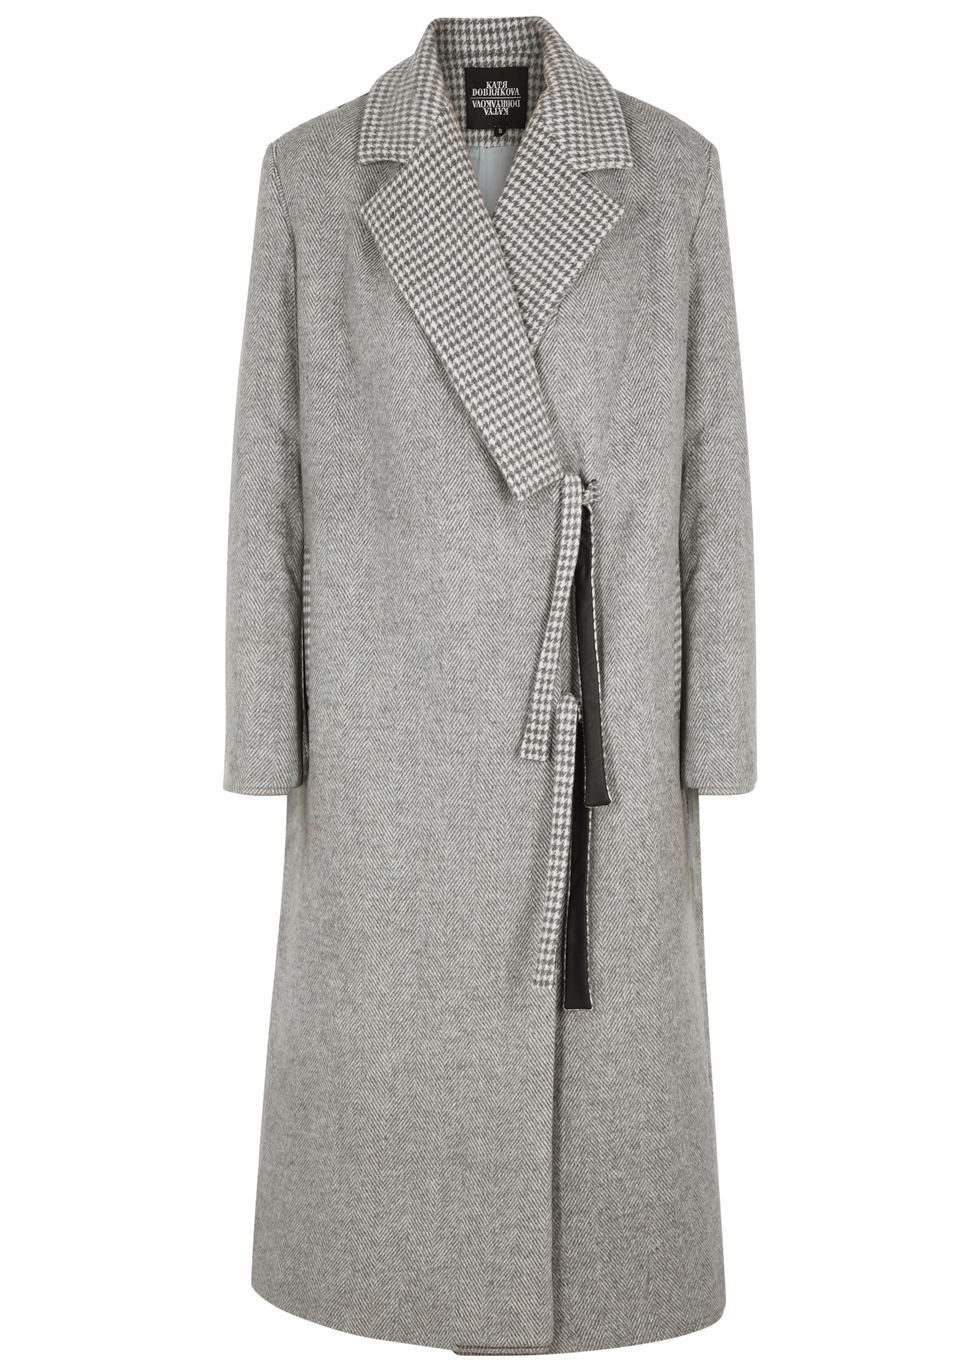 KATYA DOBRYAKOVA Cranes Embellished Wool-Blend Coat in Grey